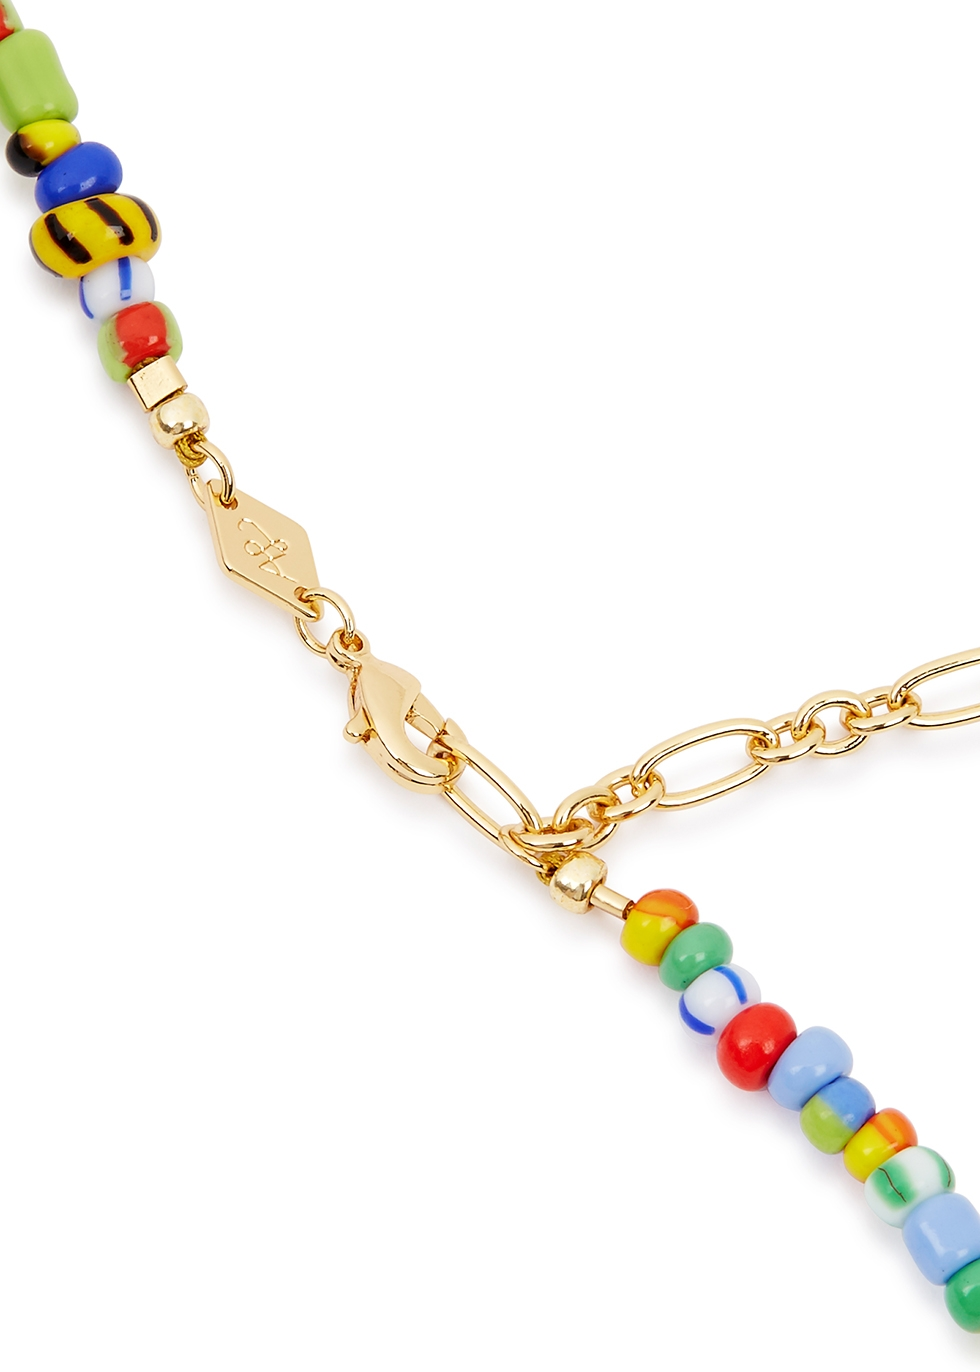 Alaia Baroque 18kt gold-plated necklace - ANNI LU